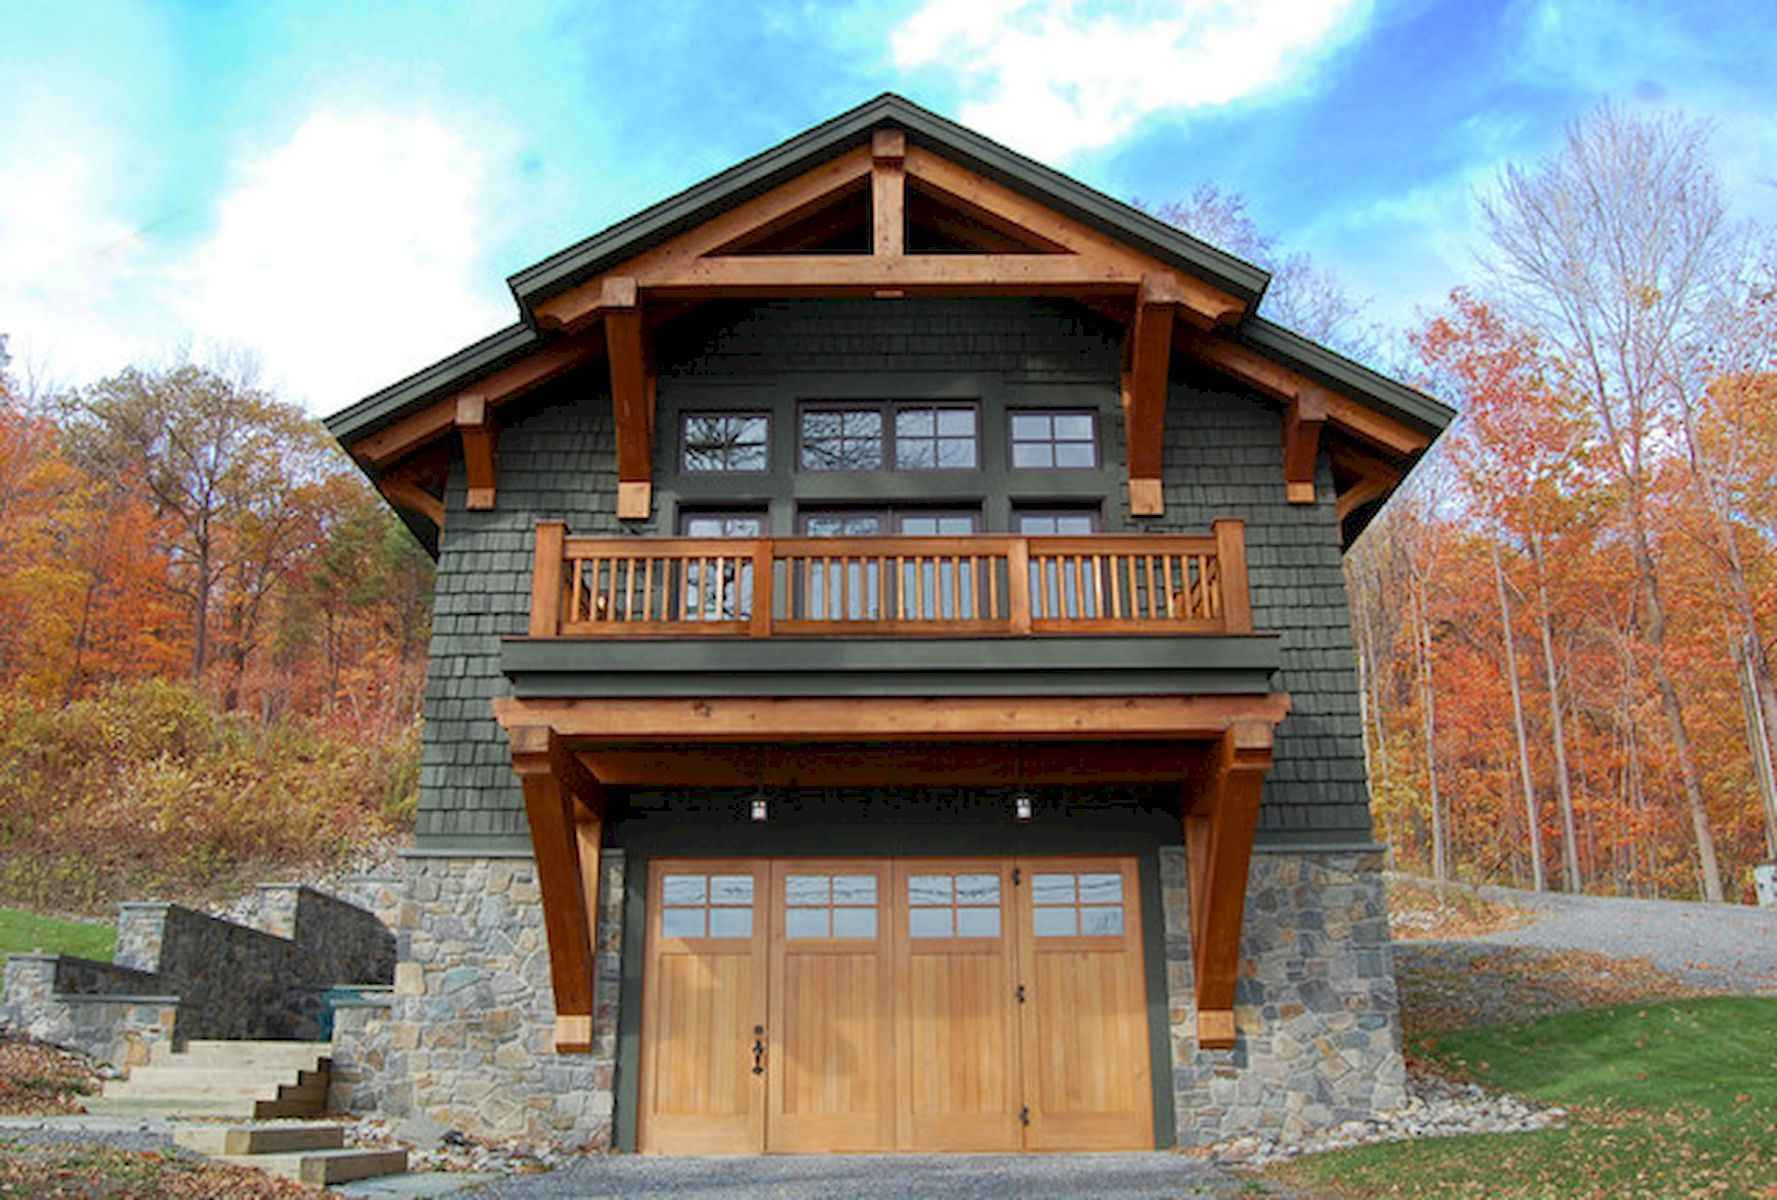 60 Rustic Log Cabin Homes Plans Design Ideas And Remodel (42)